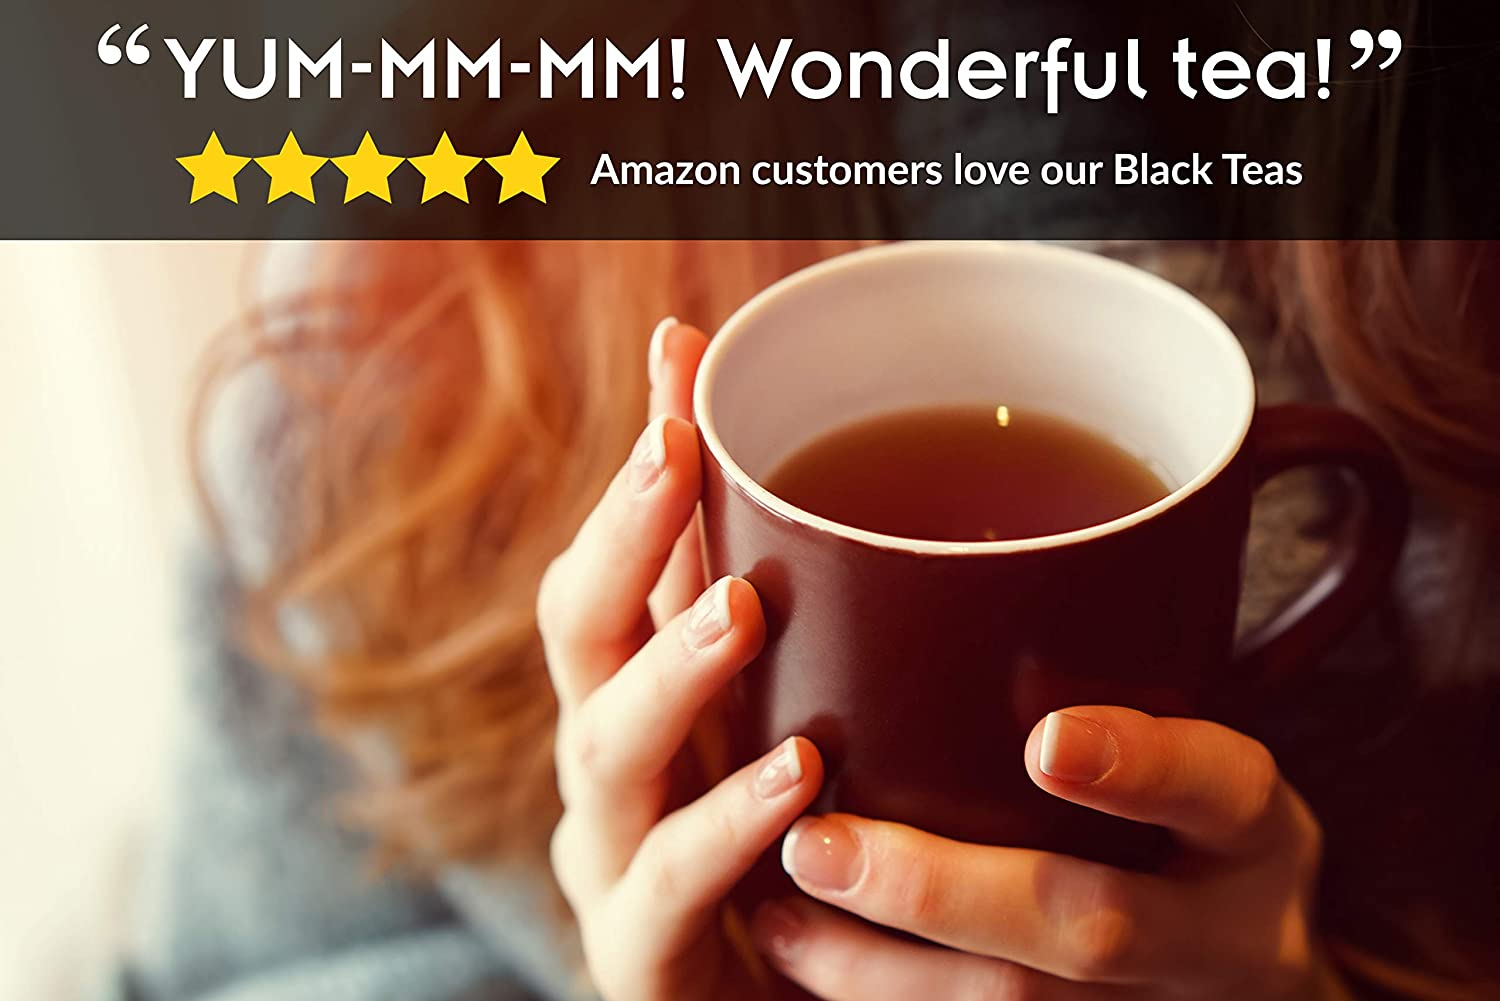 Organic Darjeeling Black Tea First Flush - Premium Loose Leaf Indian Tea from Makaibari Estate - Gourmet Hot or Iced - 1 Pound (16 oz) Pouch